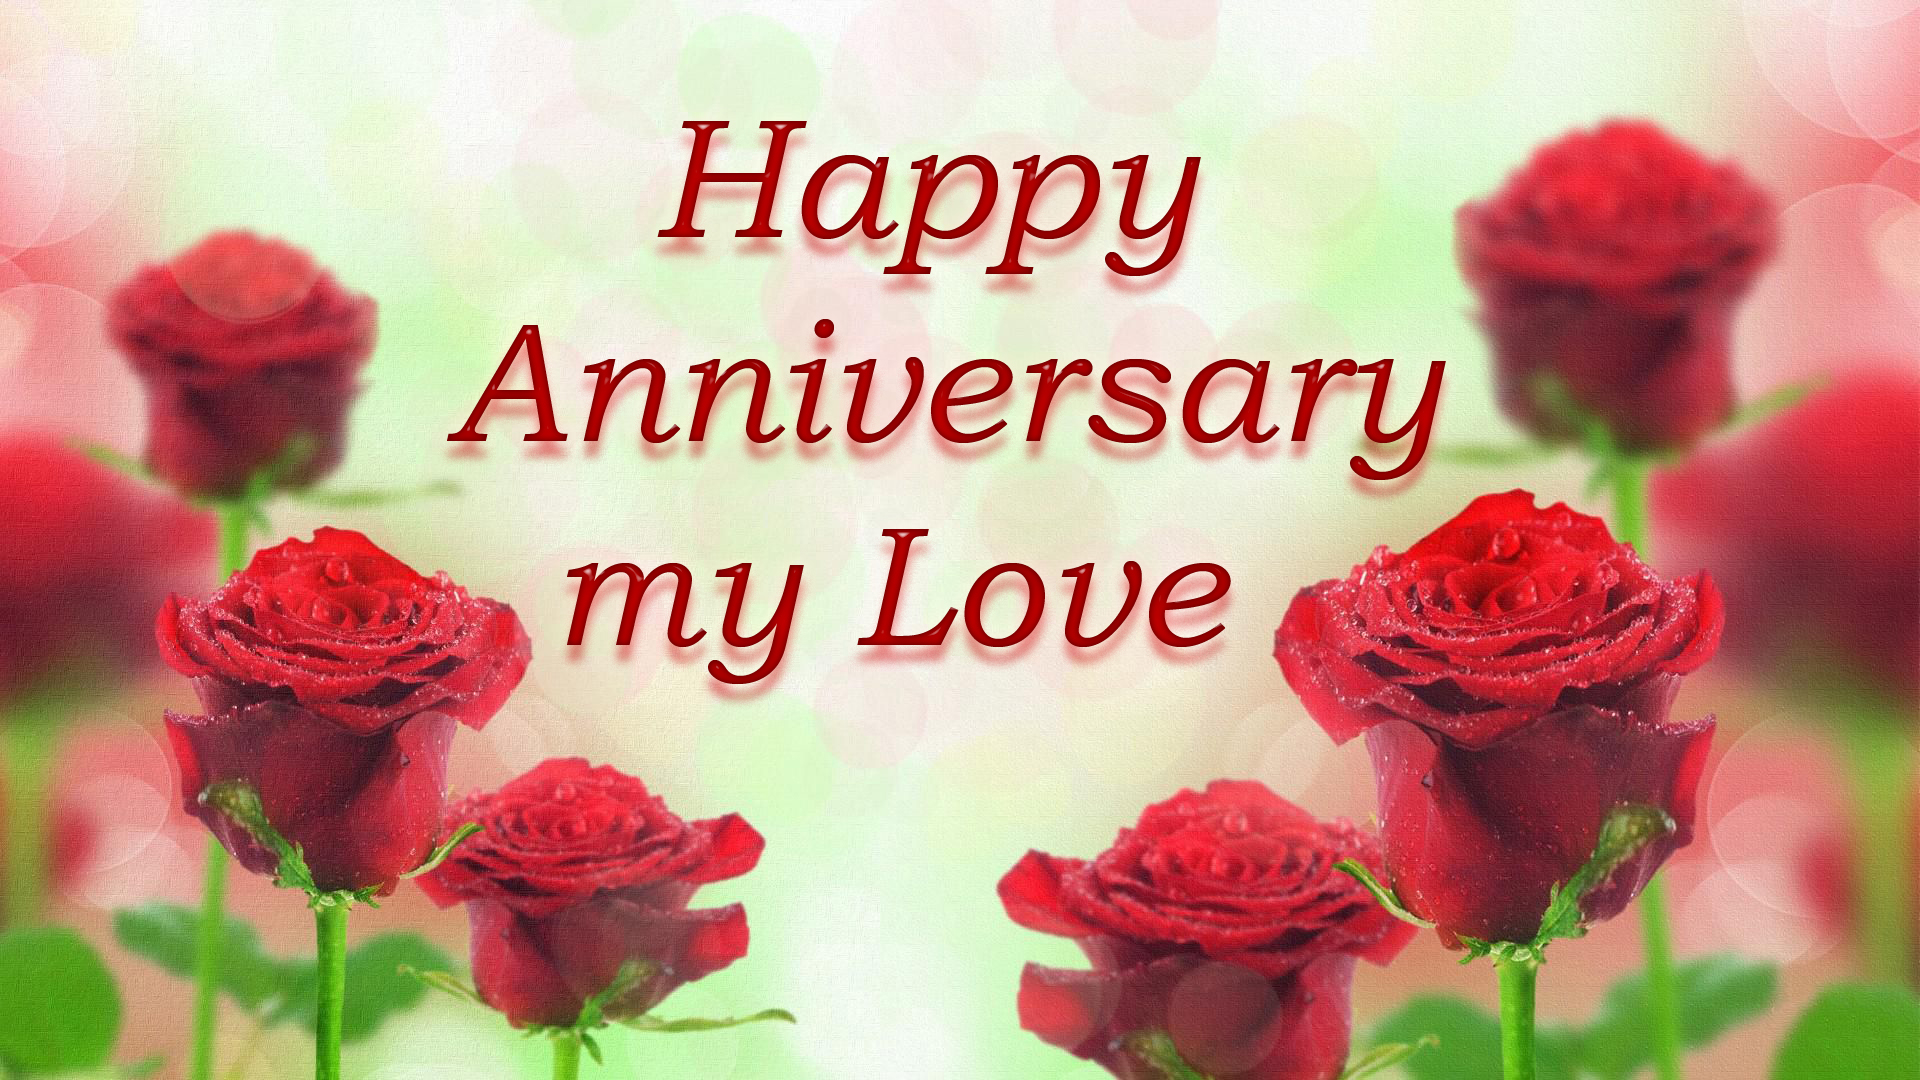 Happy Anniversary Cards Images 2018 Wedding Anniversary Wishes